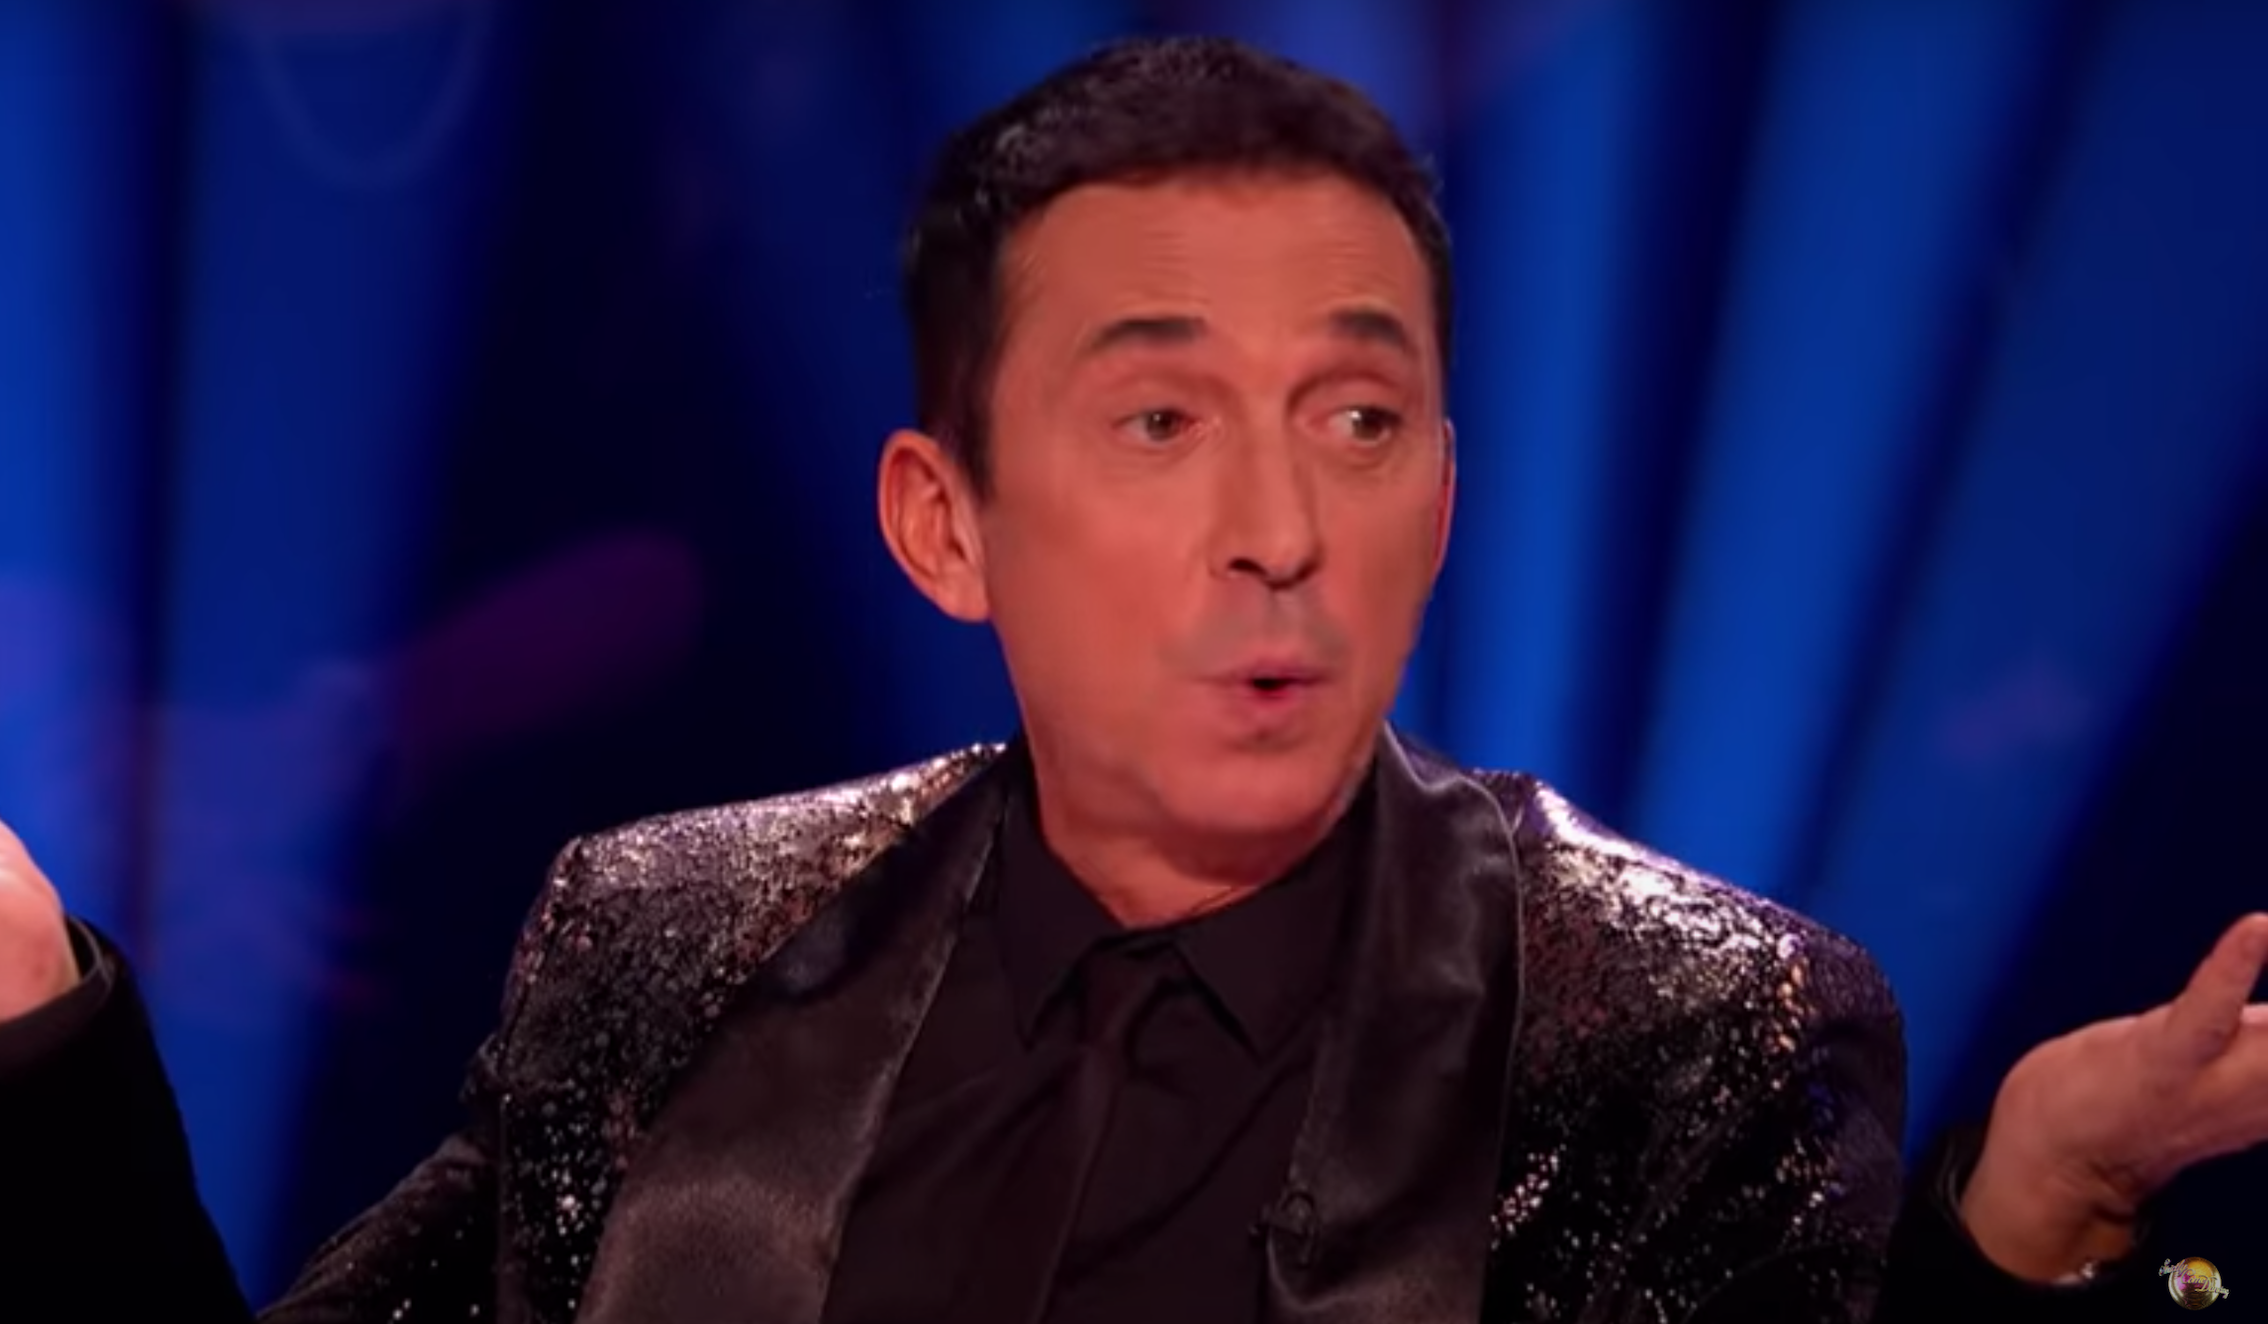 Strictly Come Dancing bosses 'fear Bruno Tonioli won't return for 2020 series'